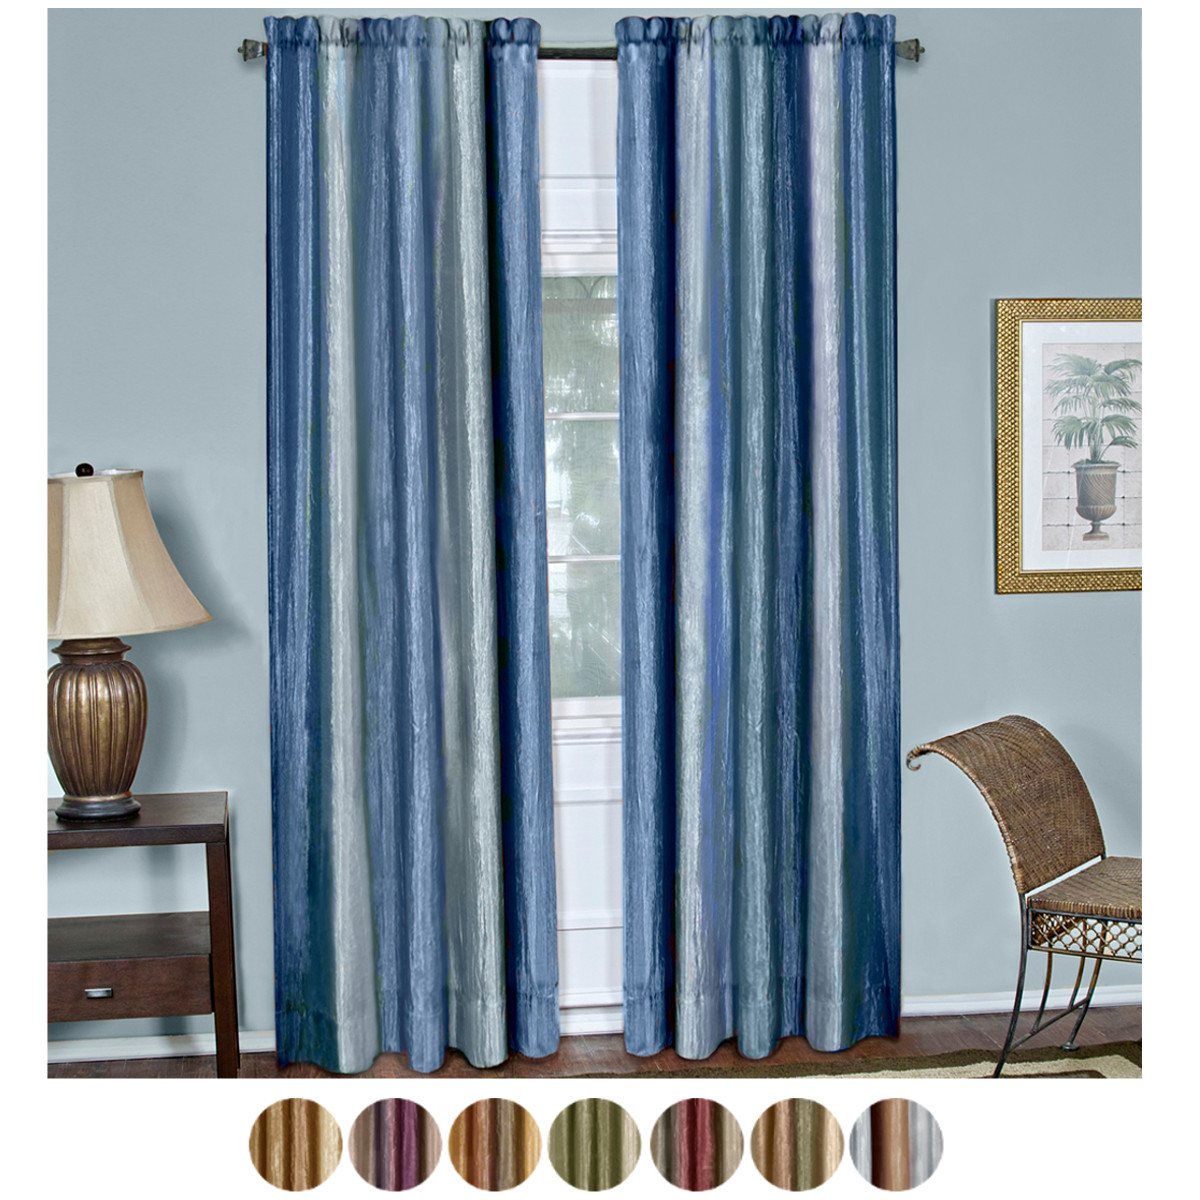 Micro Striped Semi Sheer Window Curtain Pieces Within Most Popular Details About Multi Color 2 Panel Pack Striped Modern Semi Sheer Window Curtain Drape (View 14 of 20)